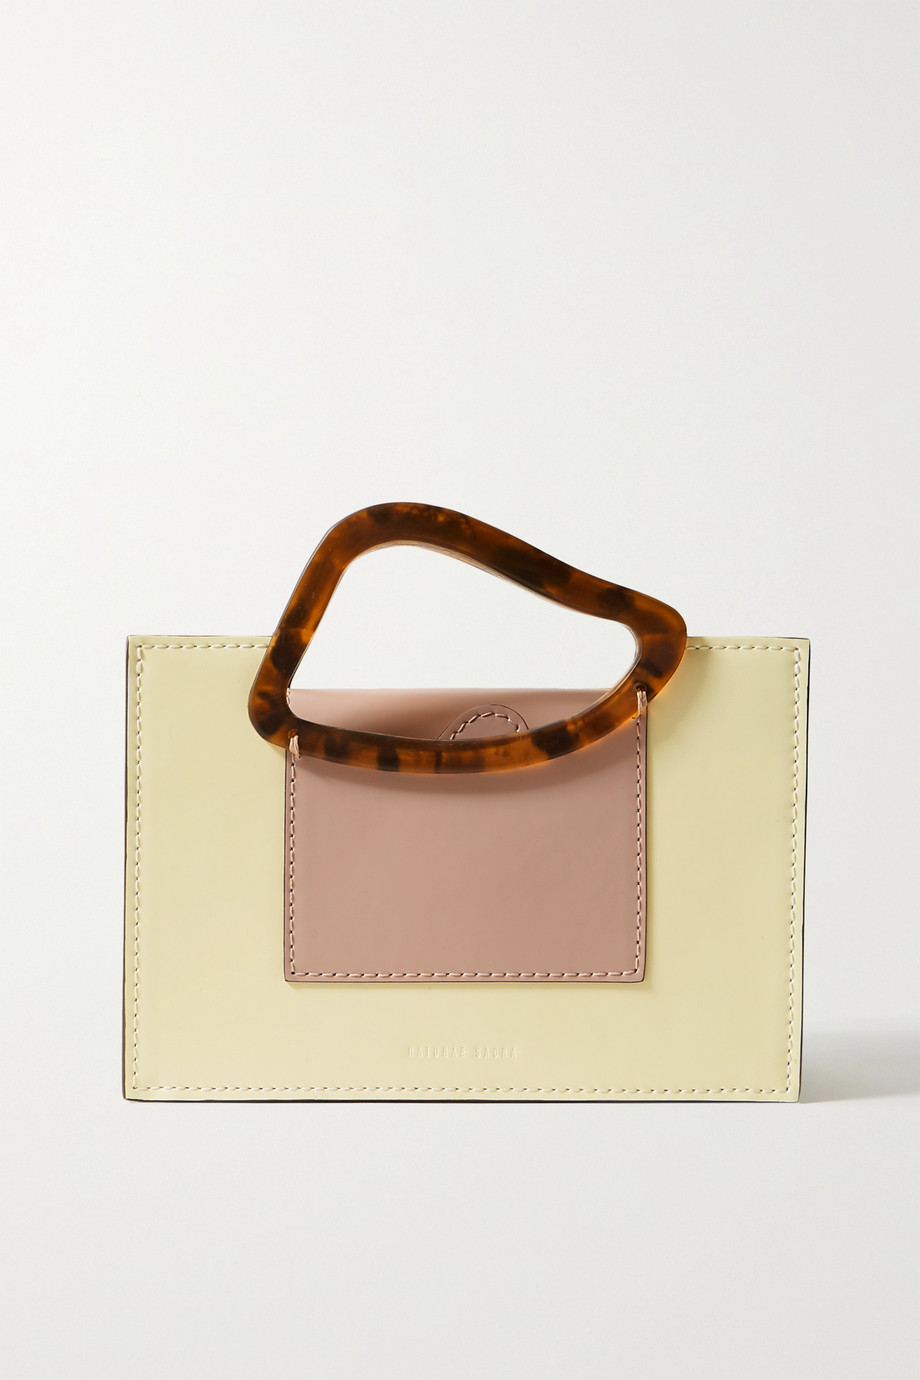 Naturae Sacra Arp mini two-tone leather and resin tote